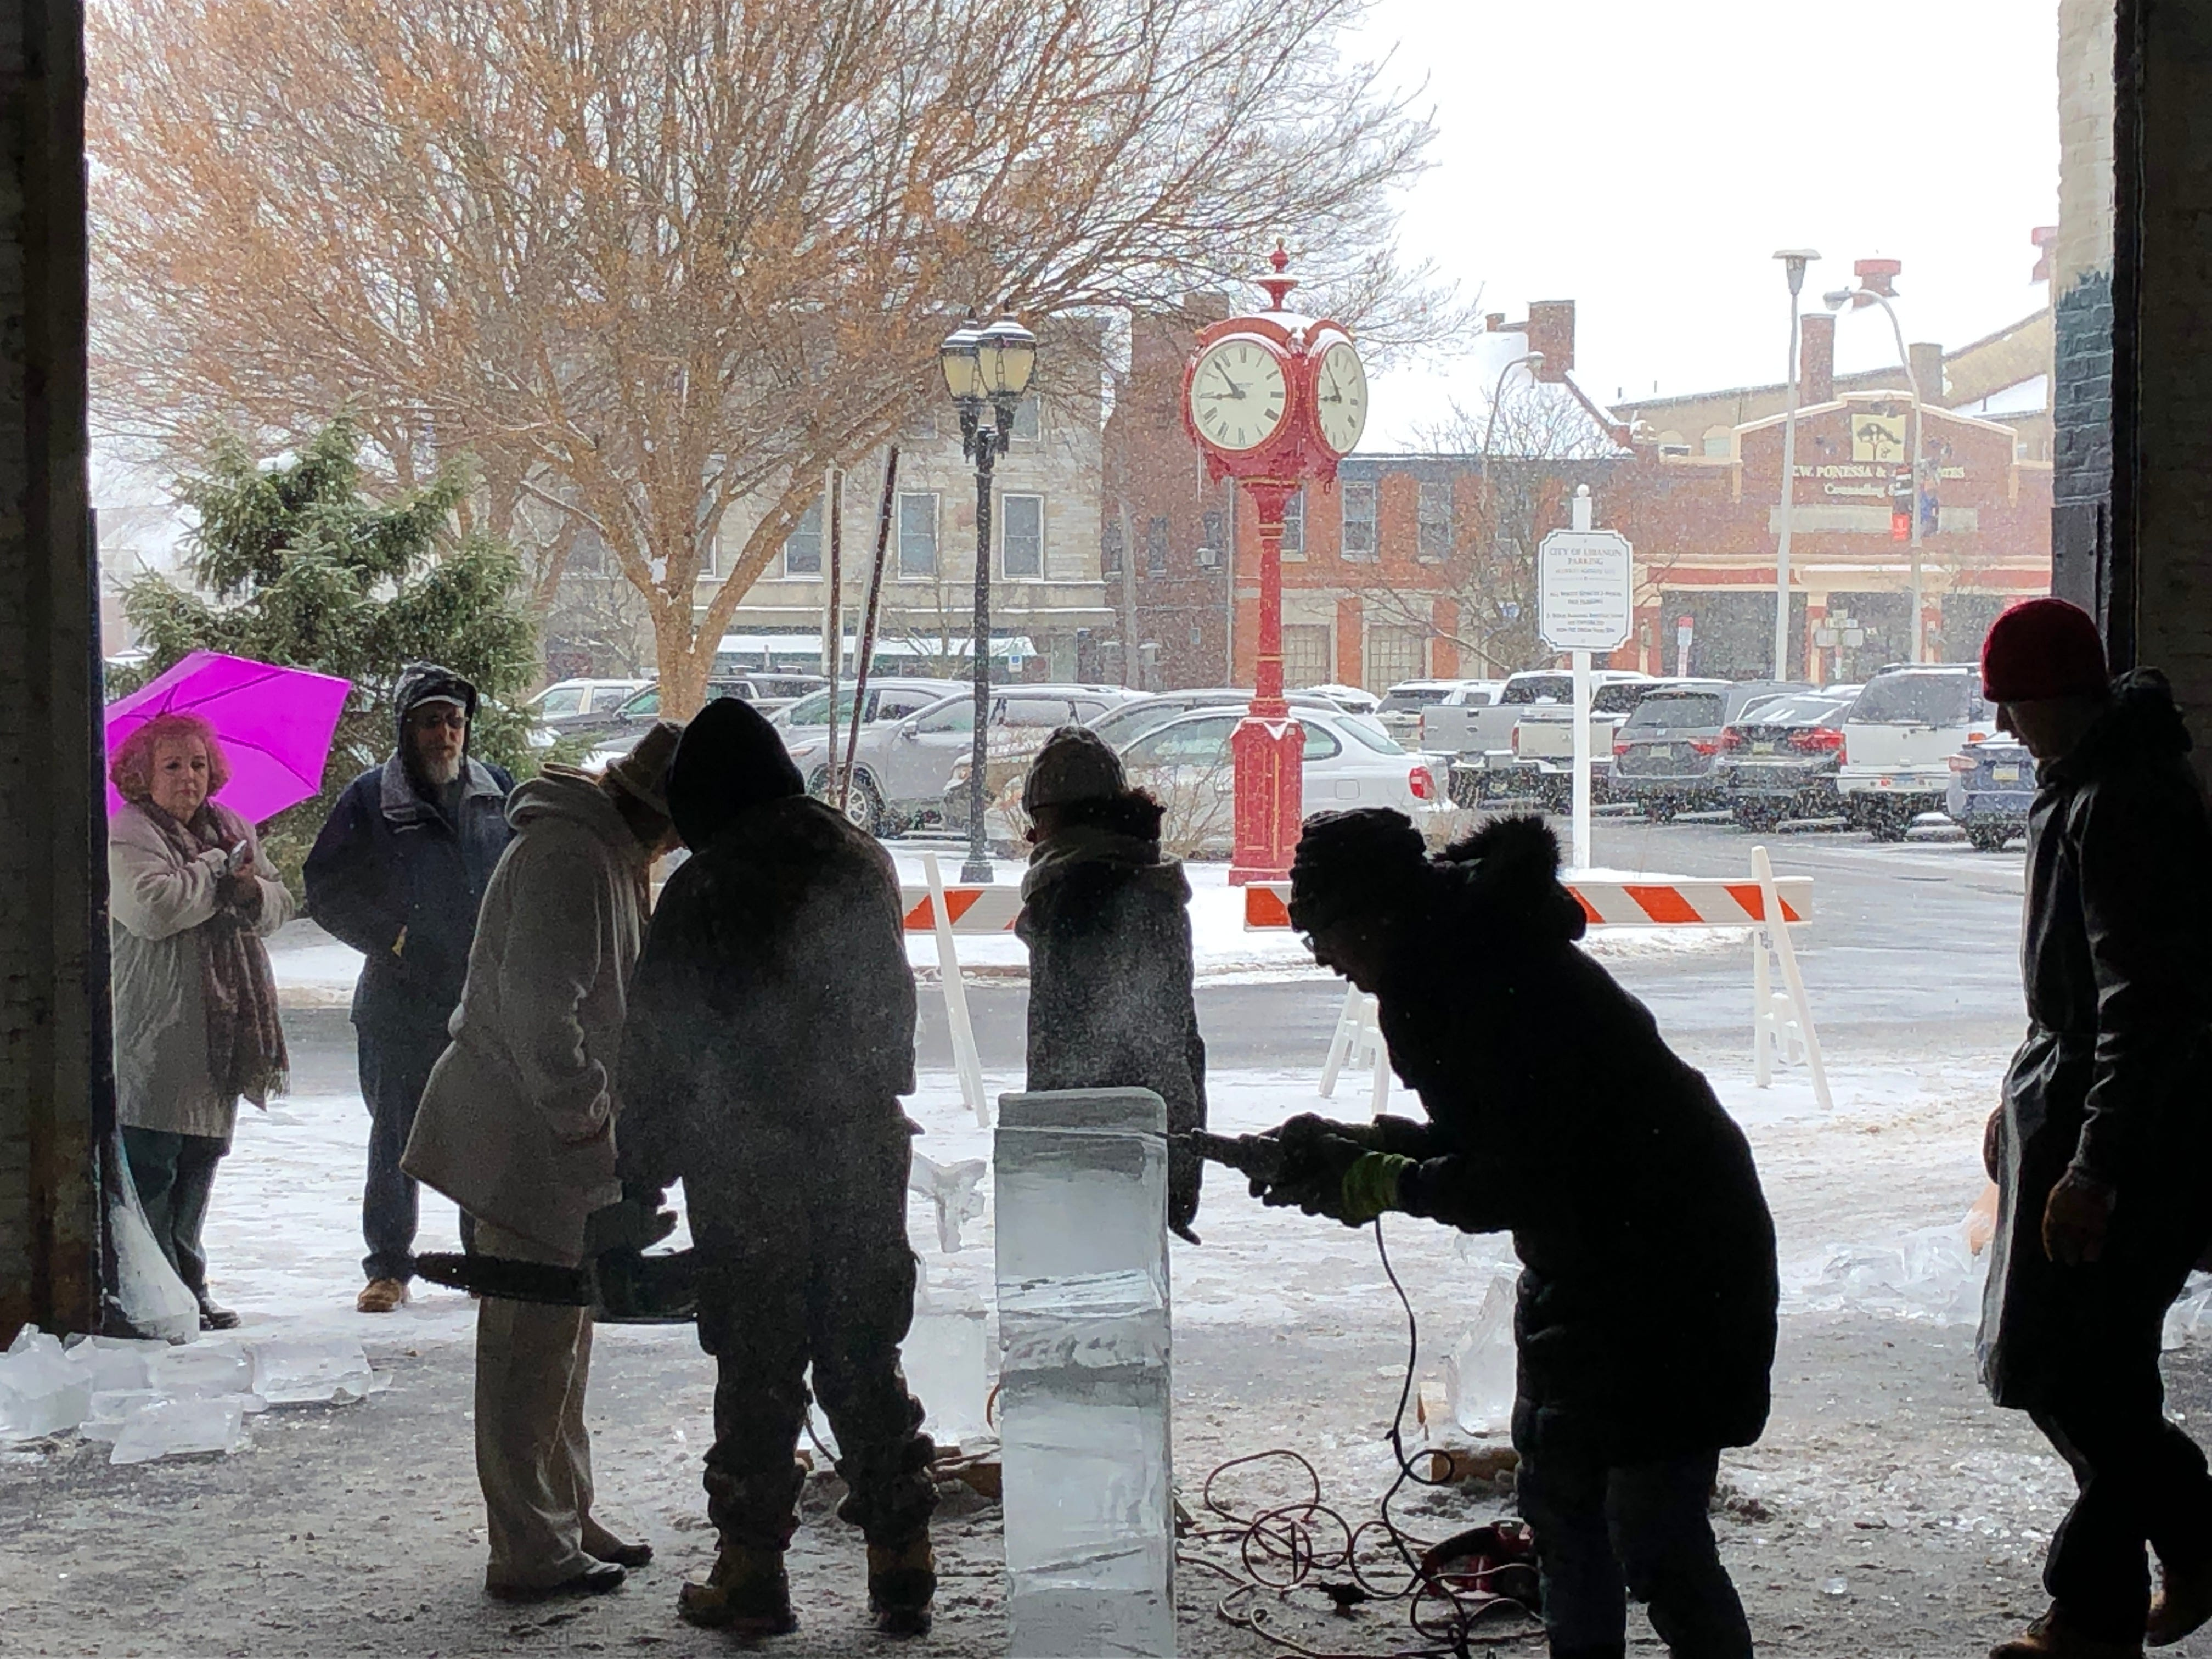 Snow continues to fall downtown as LCCTC students complete their ice sculptures.